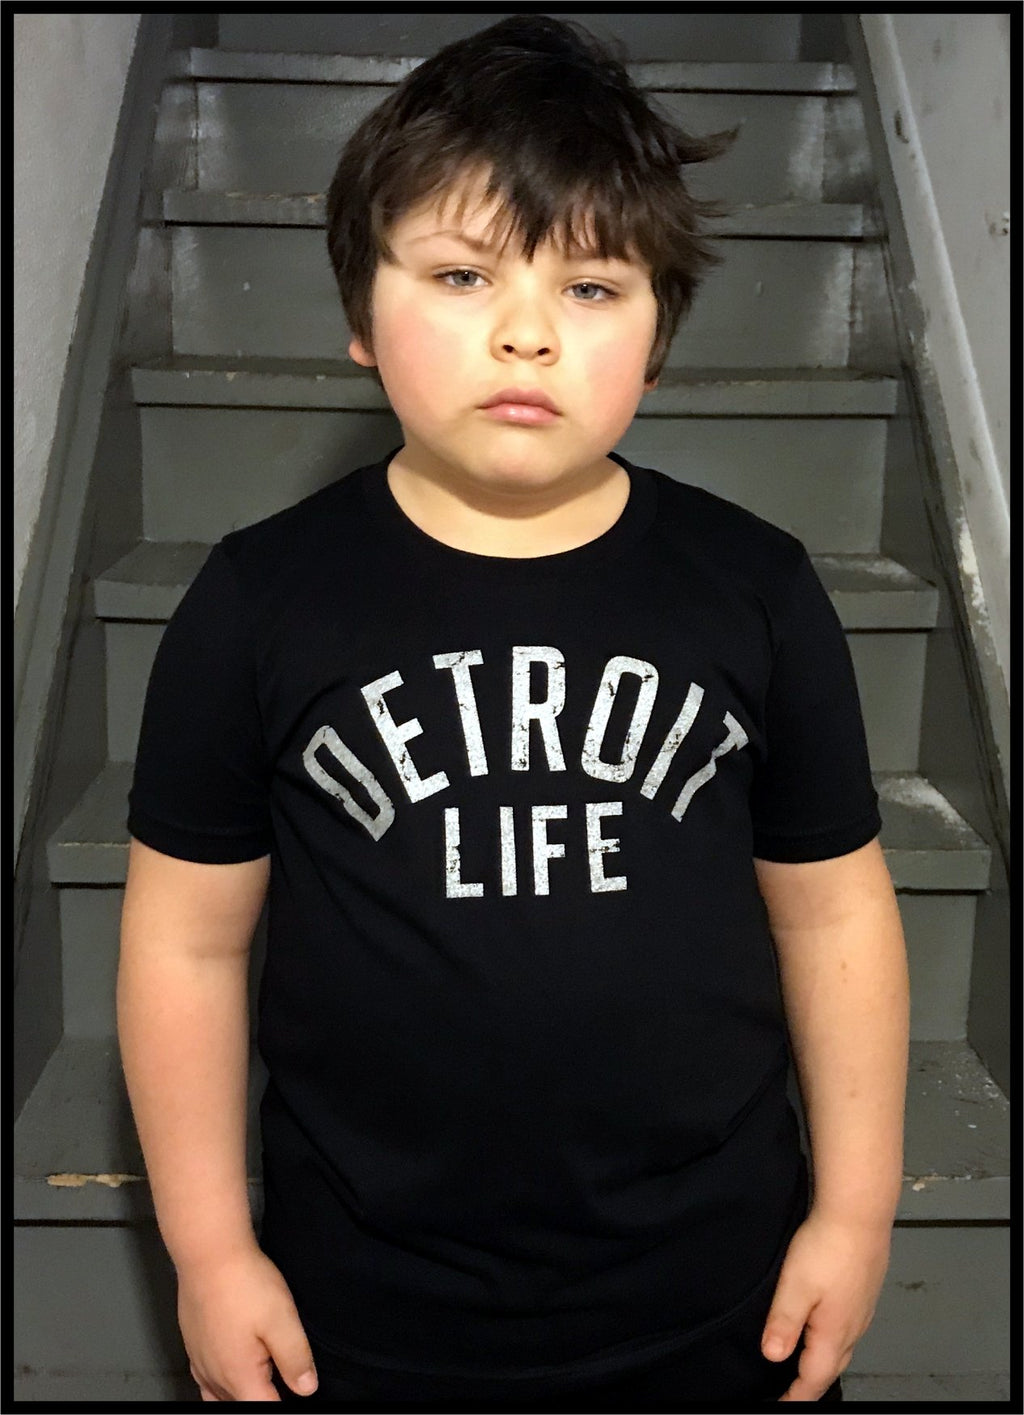 Detroit Life Original T Shirt